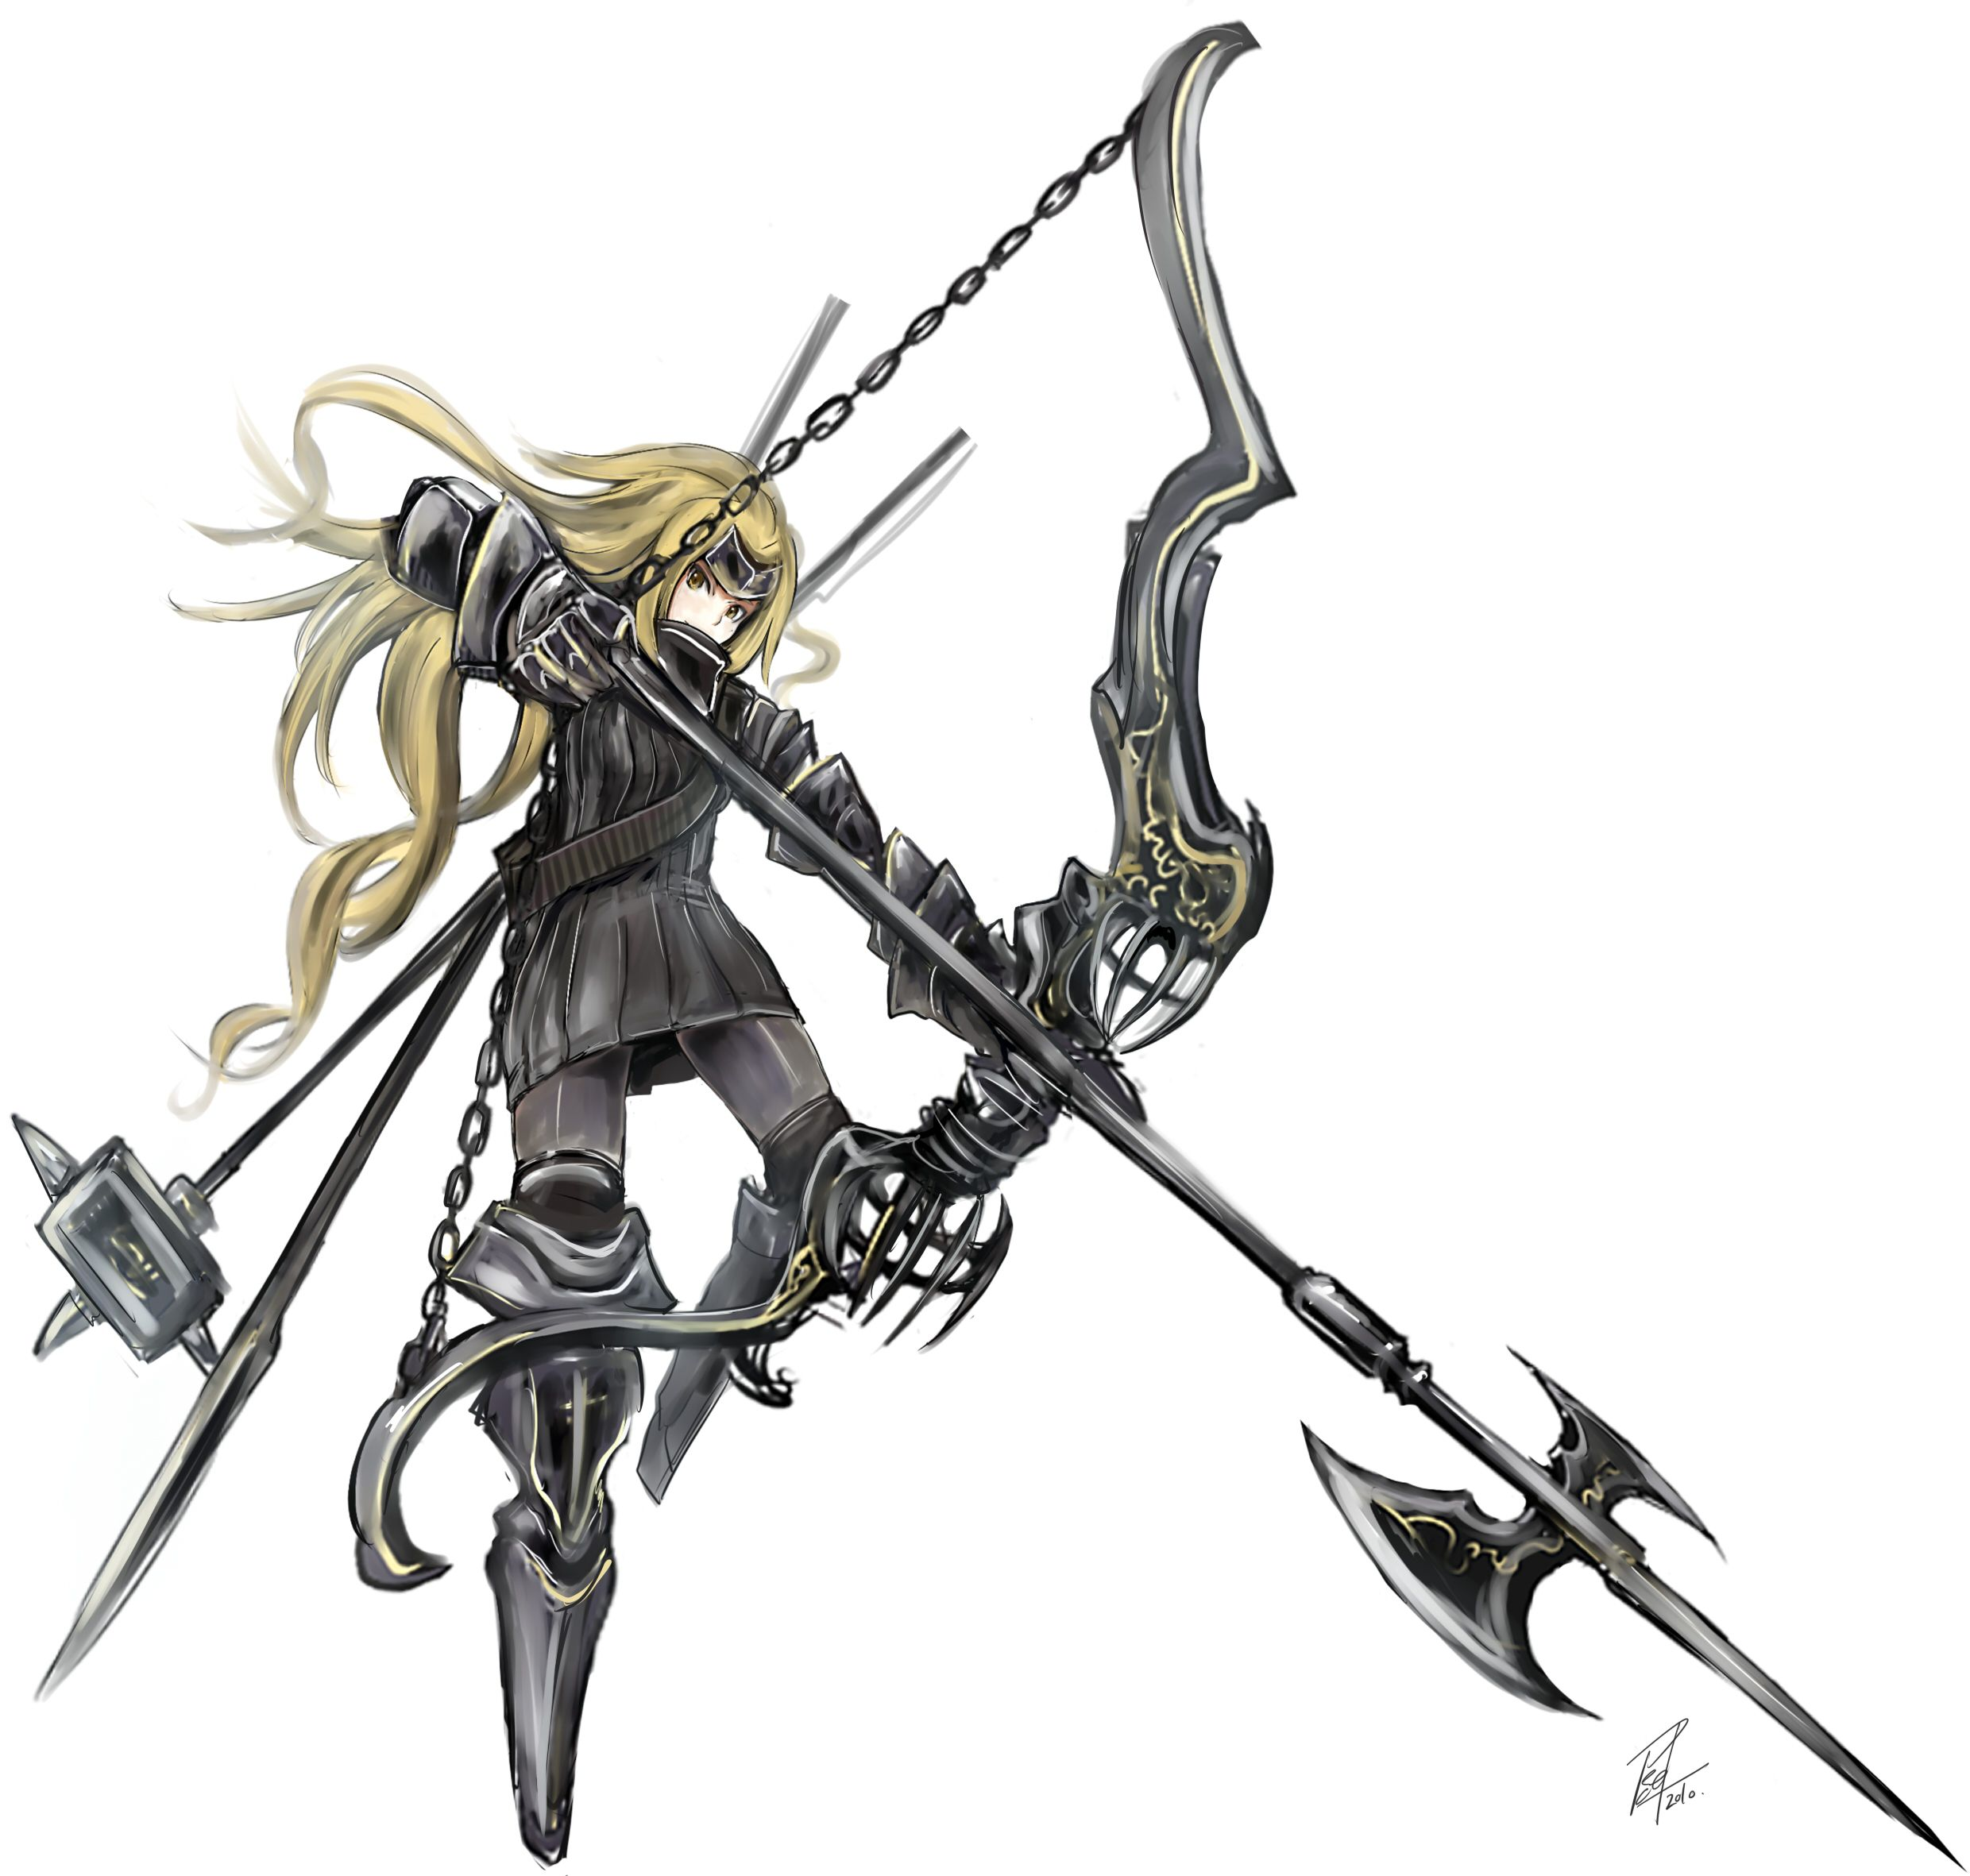 Image Armor Blonde Hair Bow Weapon Chain Halberd